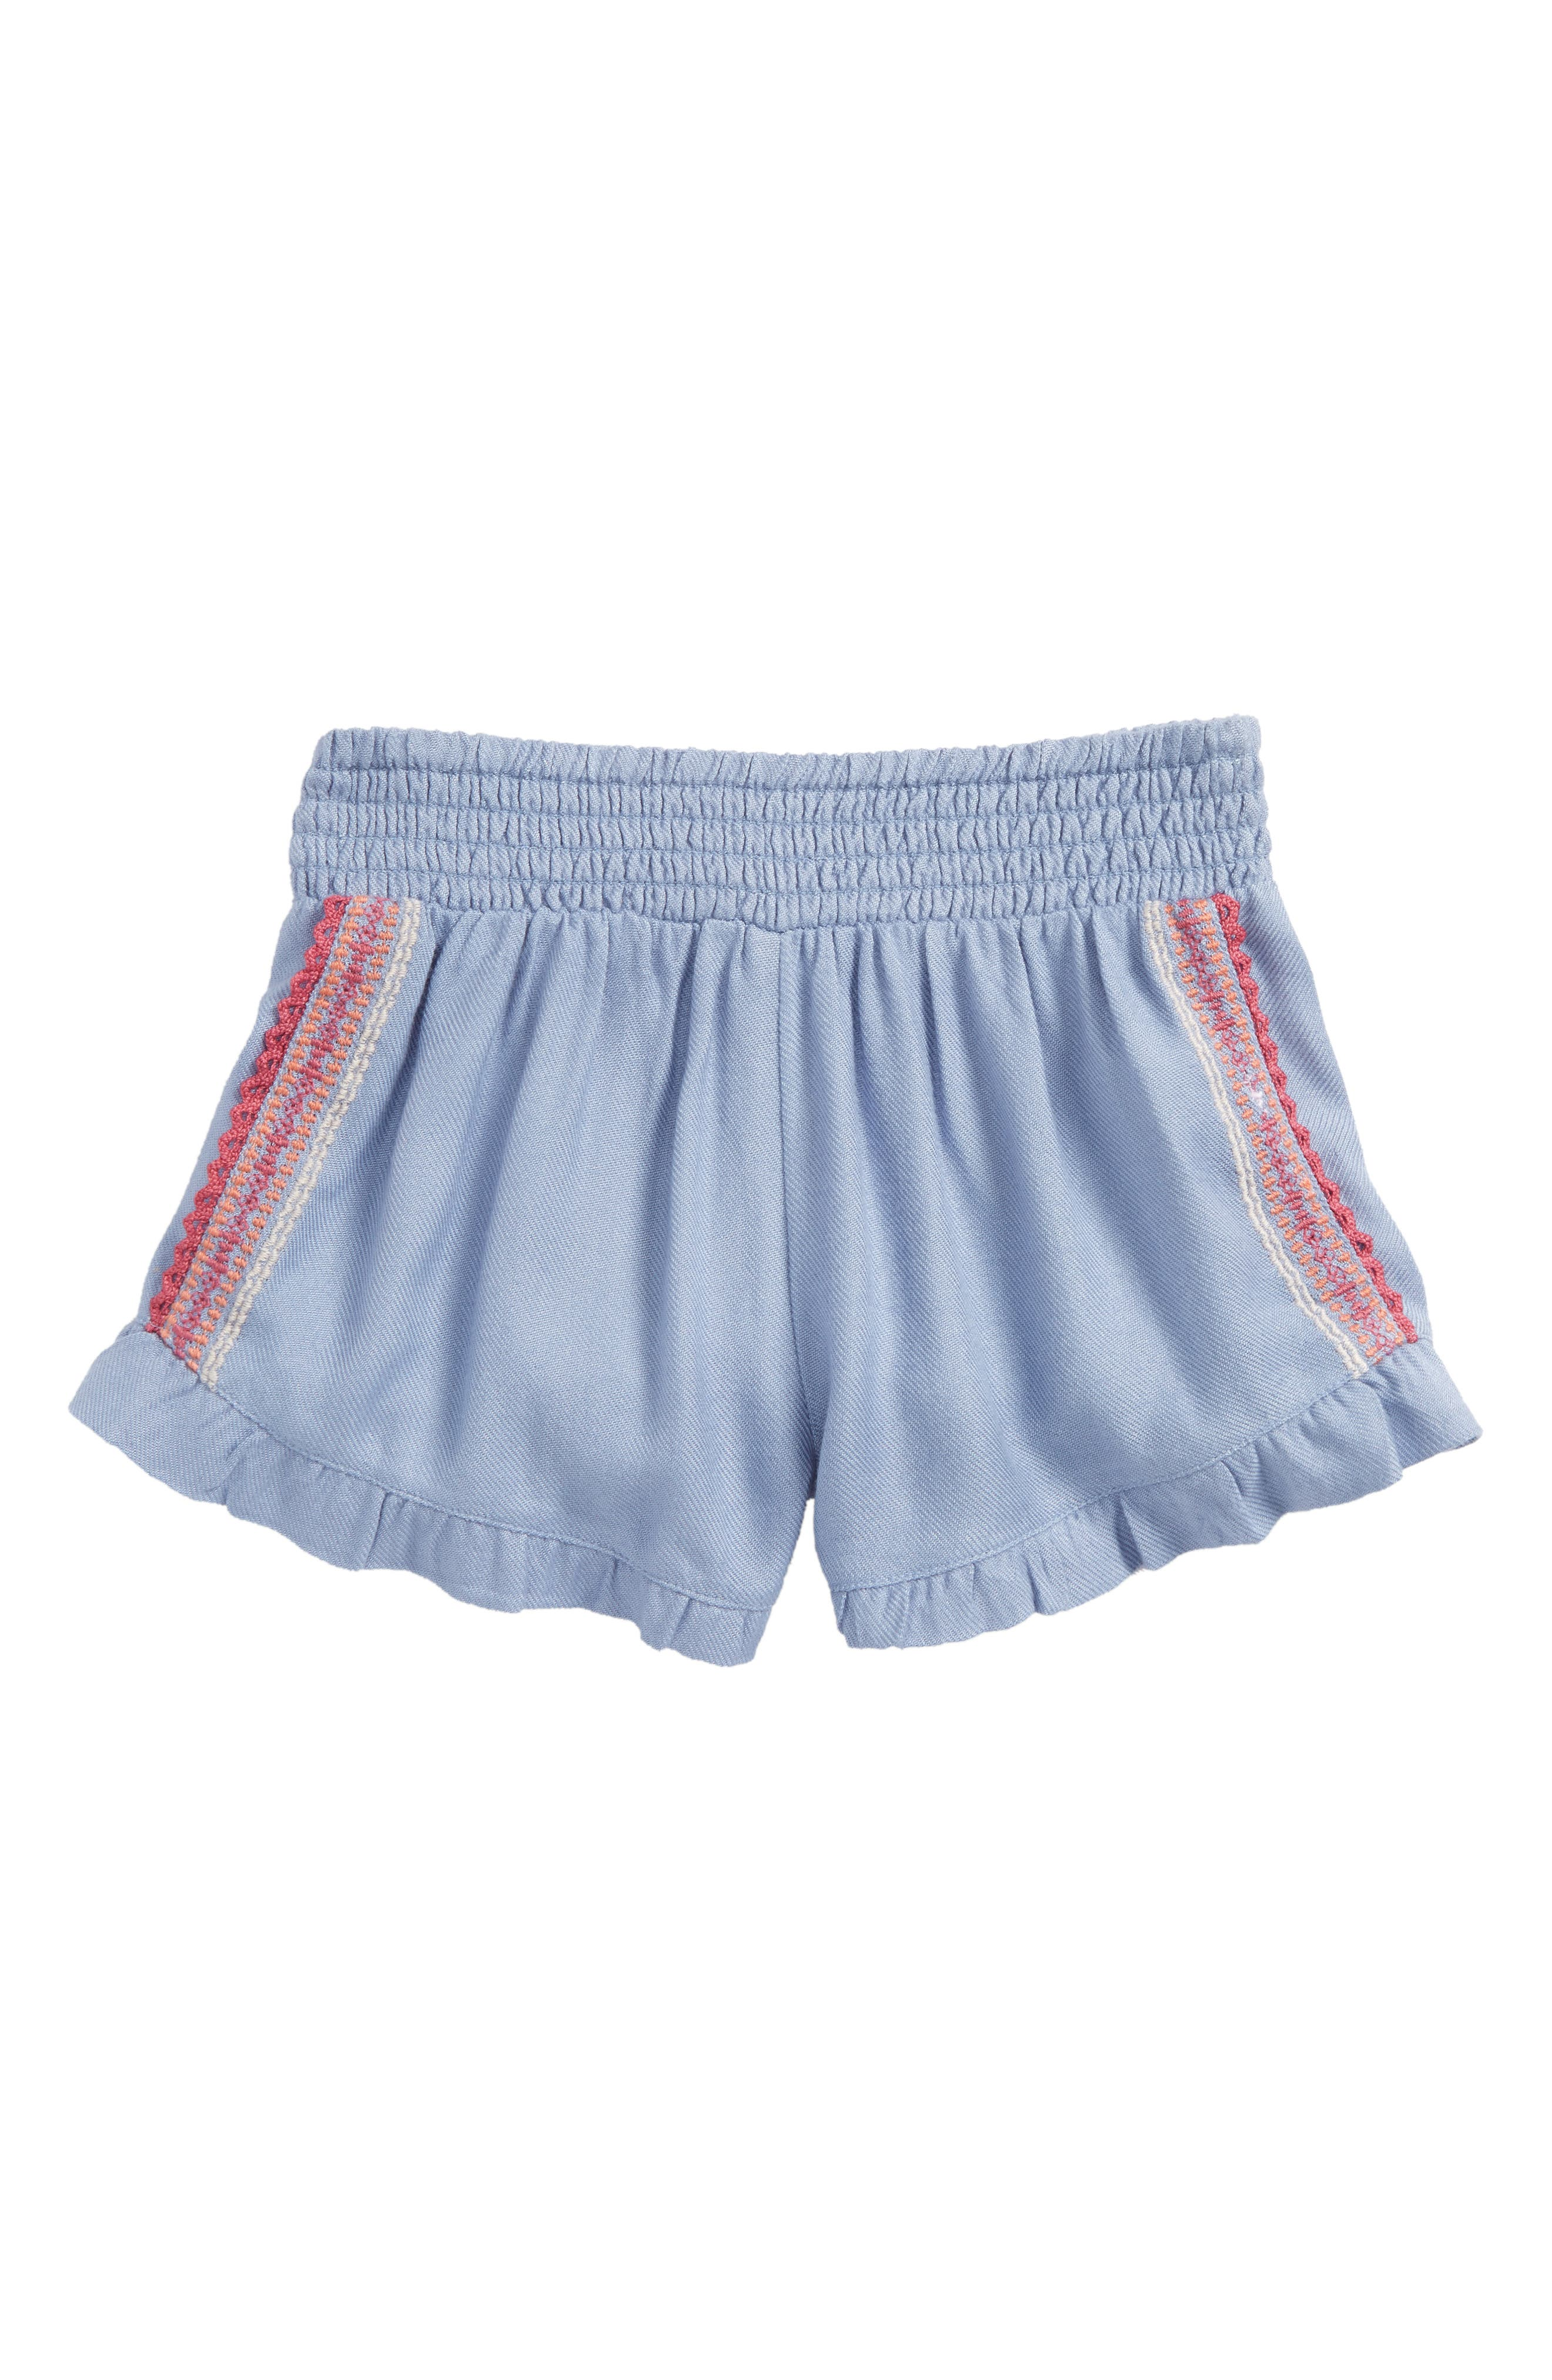 O'NEILL,                             Bay Ruffle Shorts,                             Main thumbnail 1, color,                             400